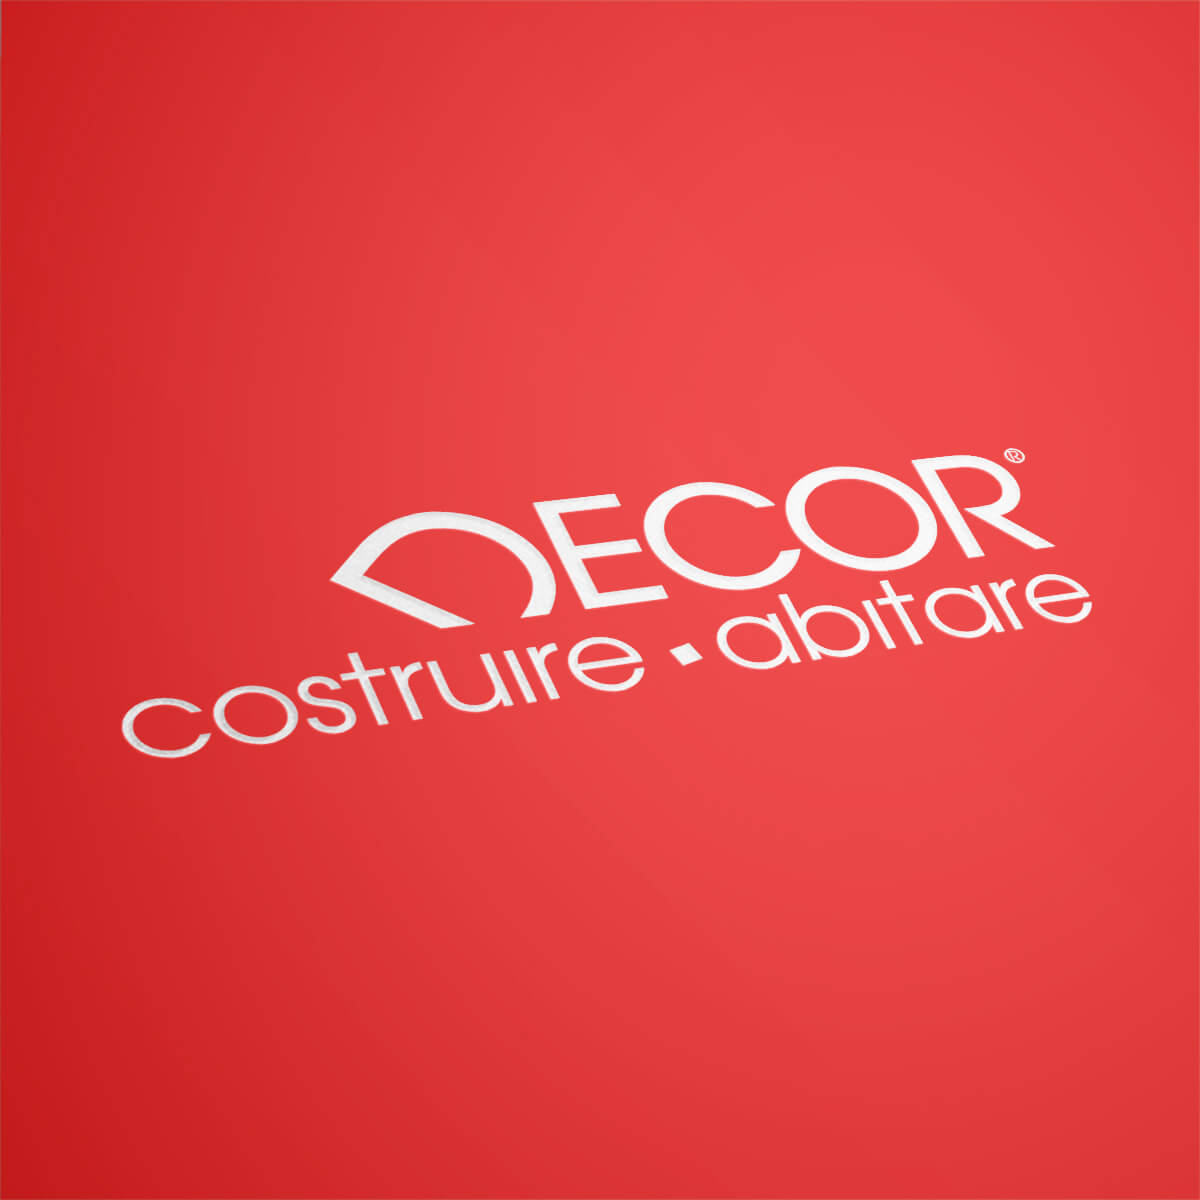 Decor - logo